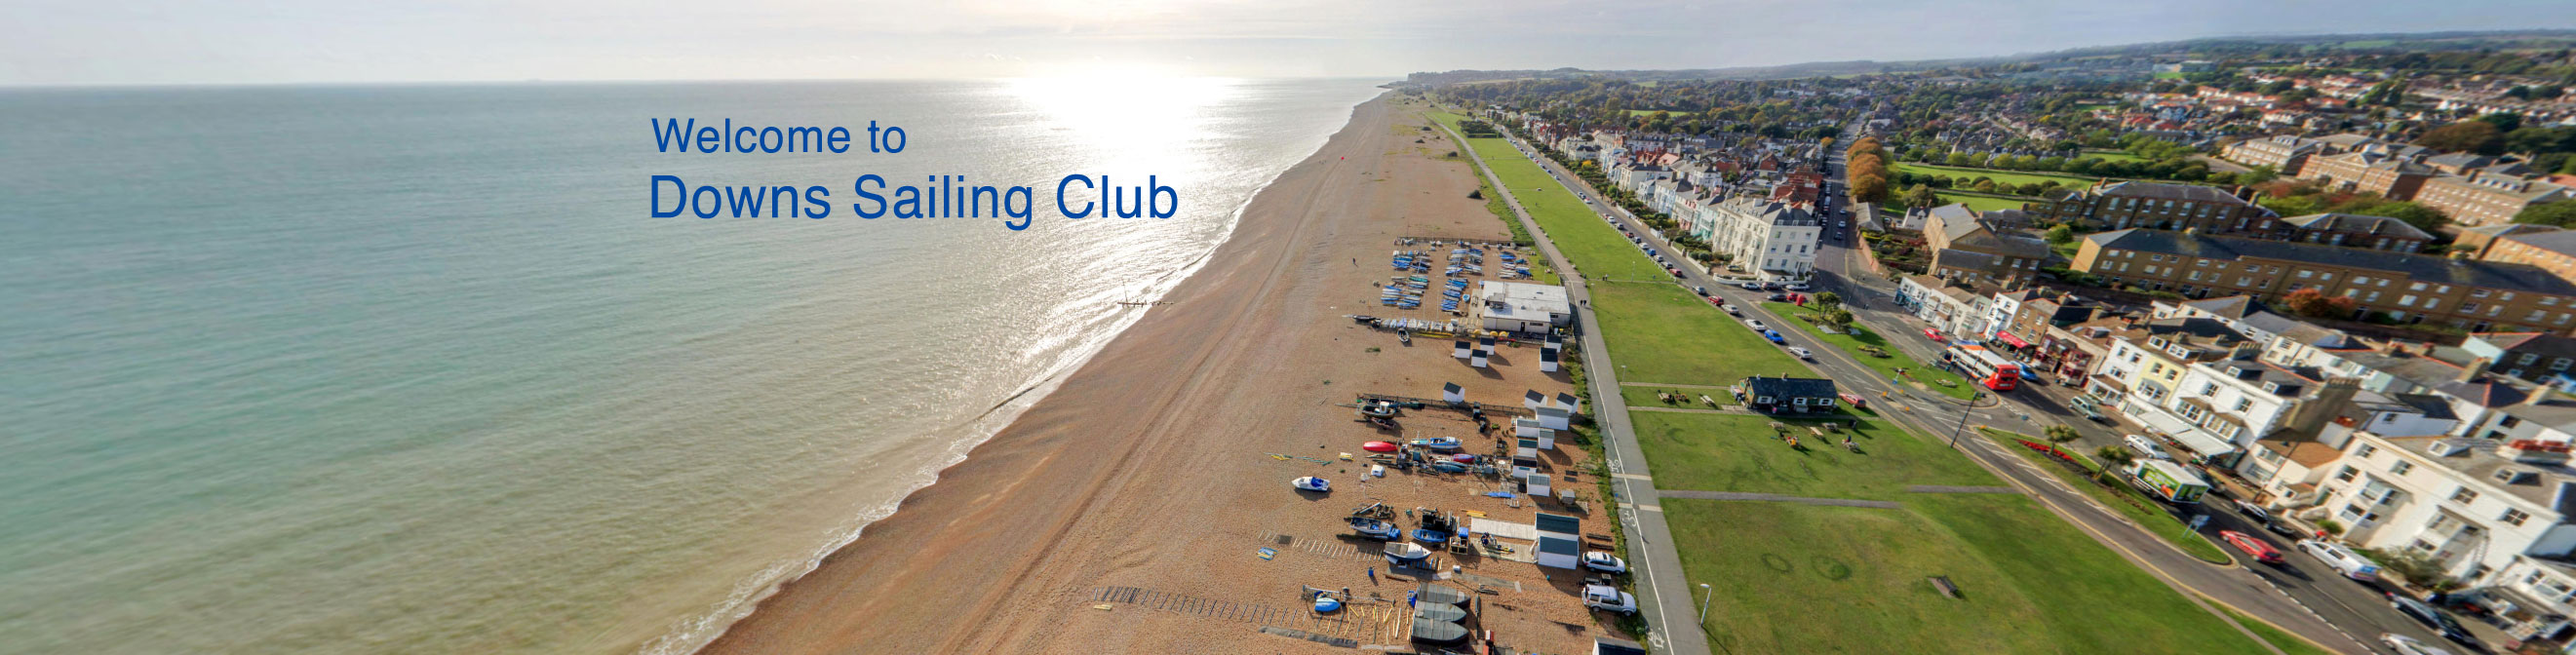 Downs Sailing Club